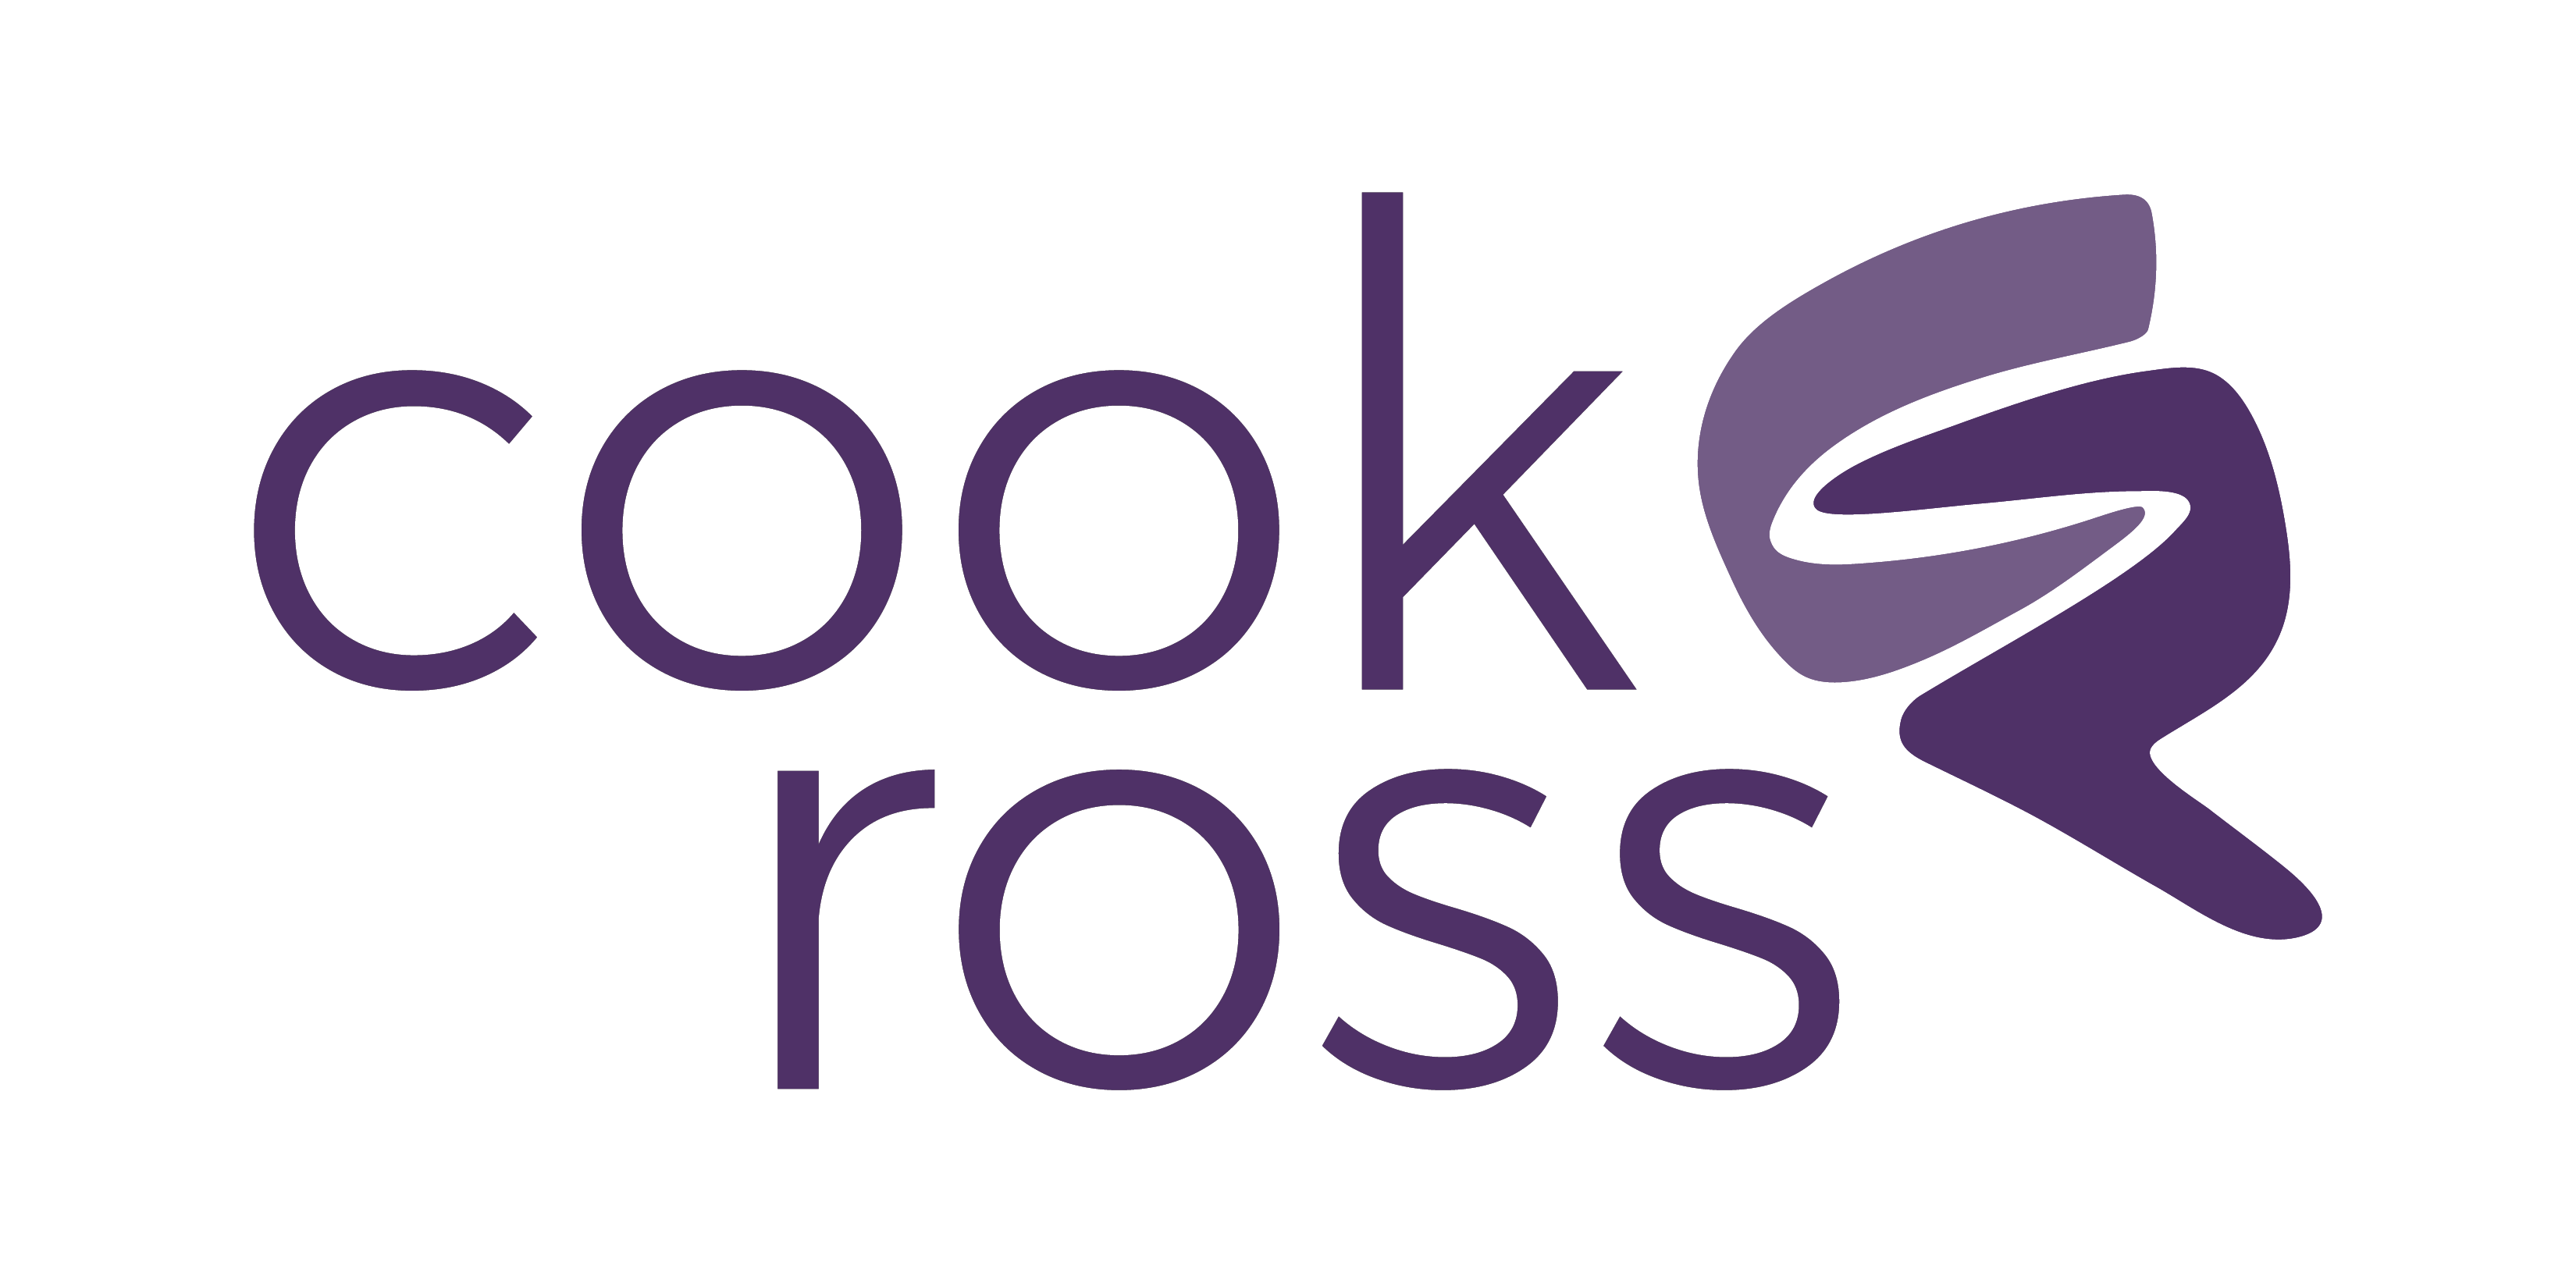 Cook Ross logo